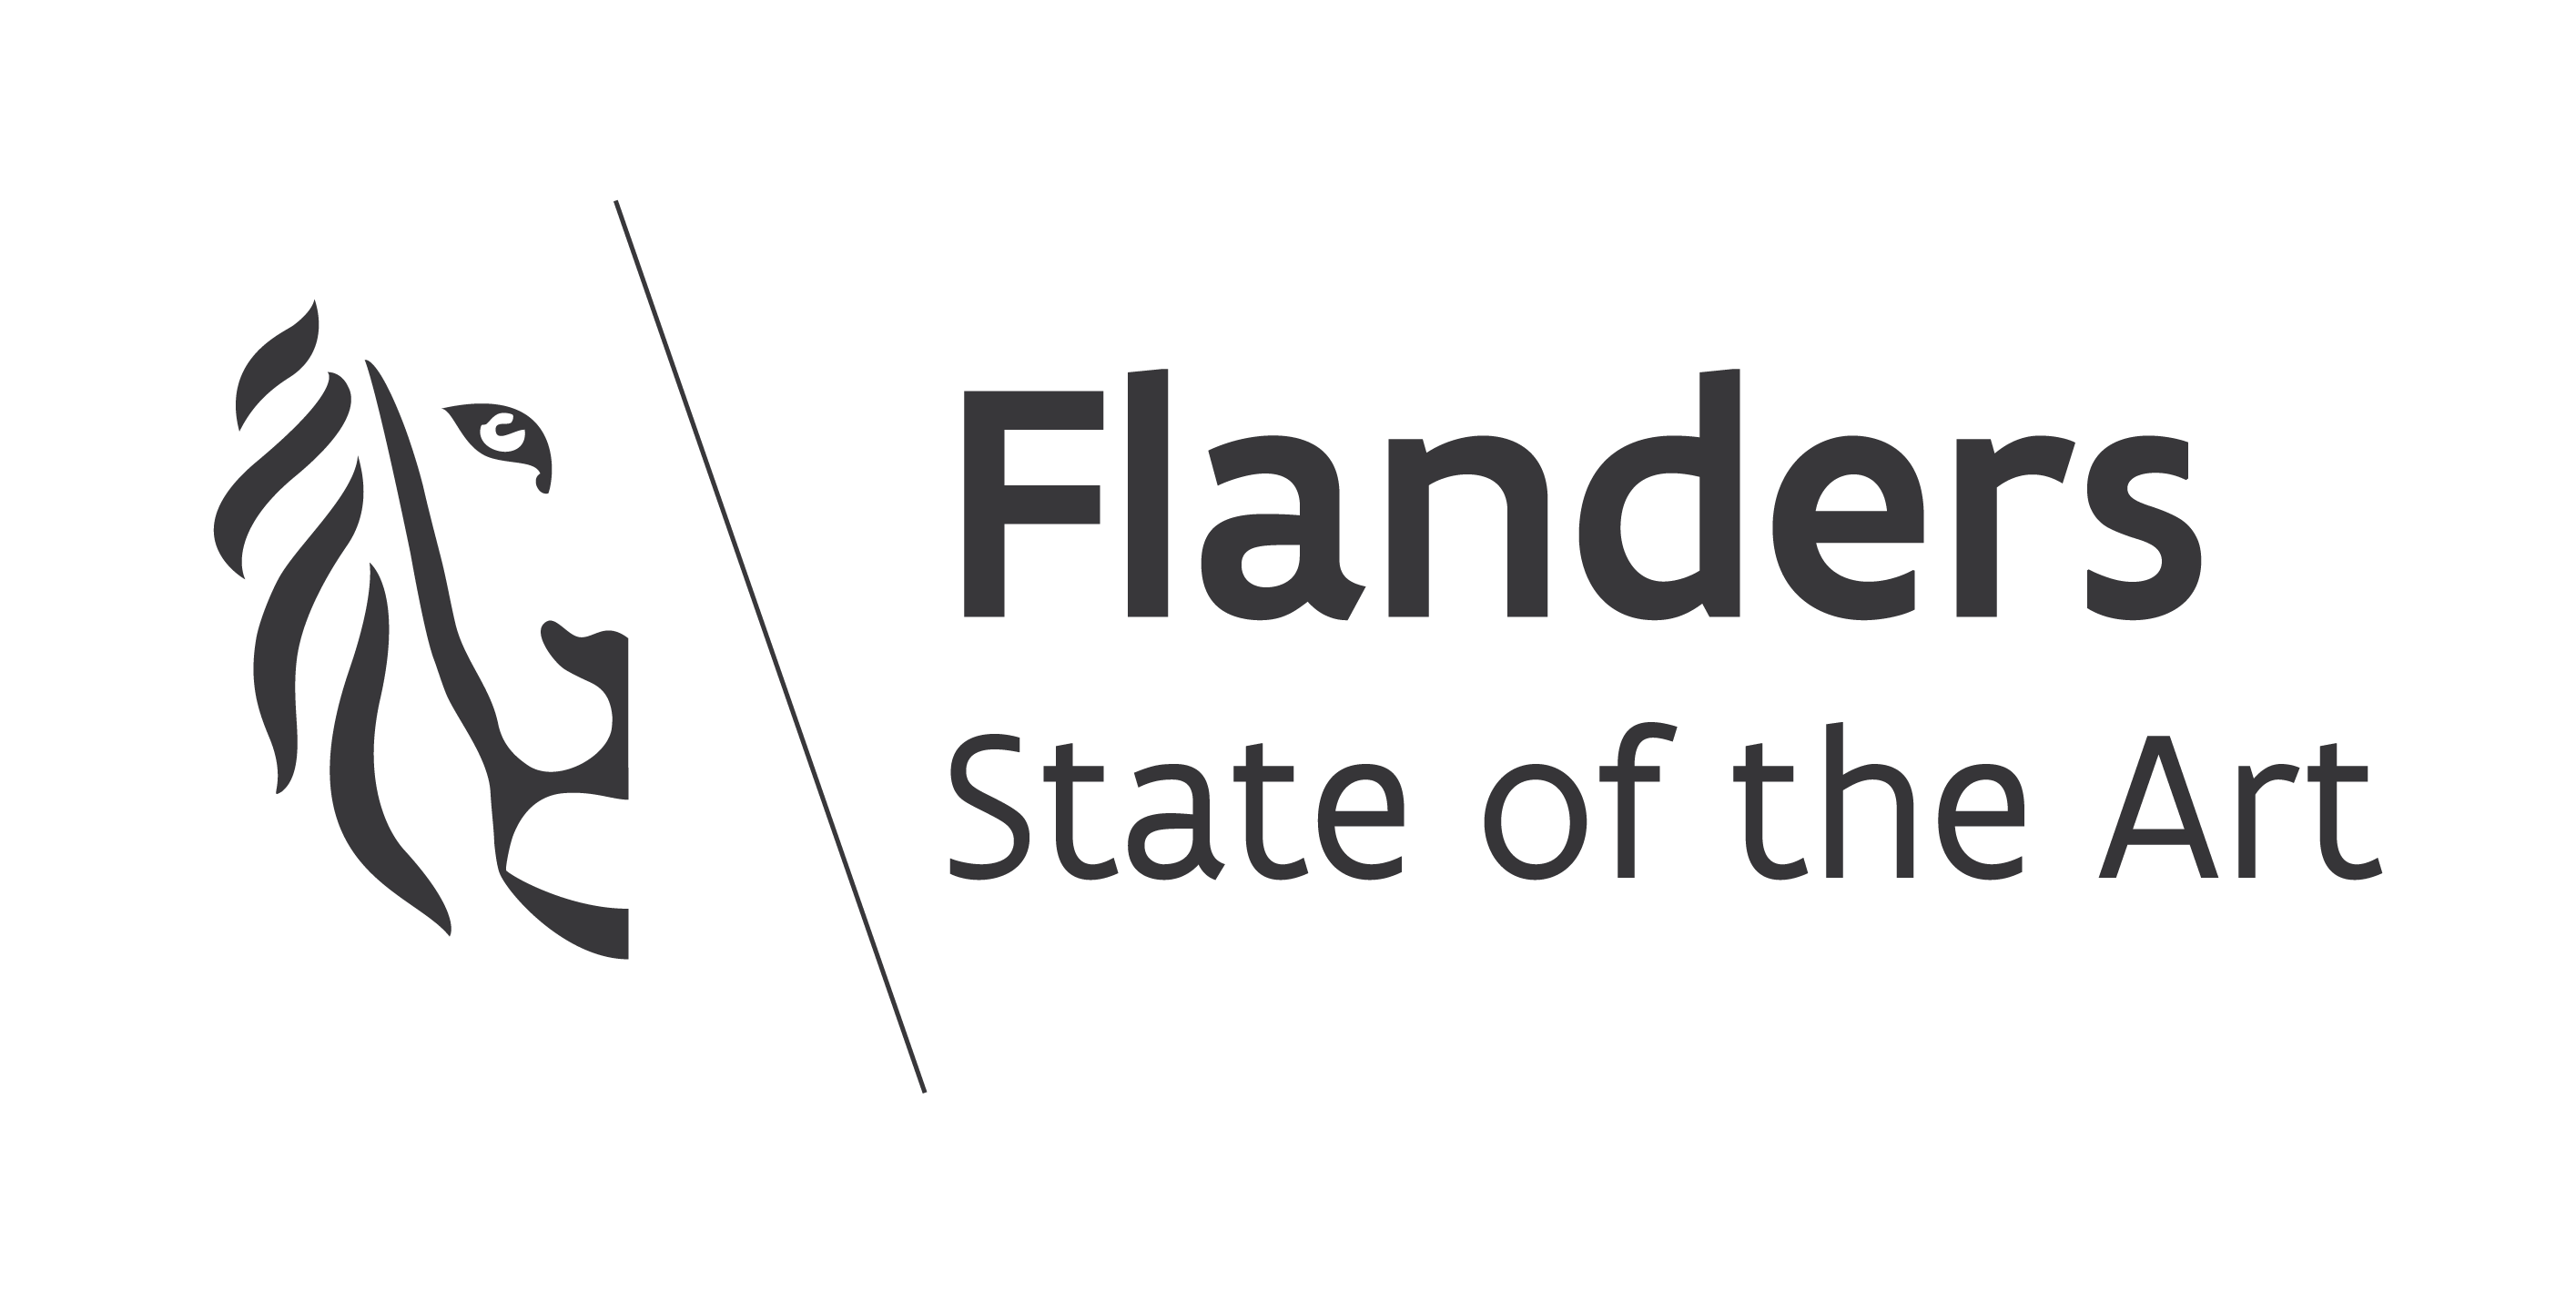 Flanders (State of the Art) logo